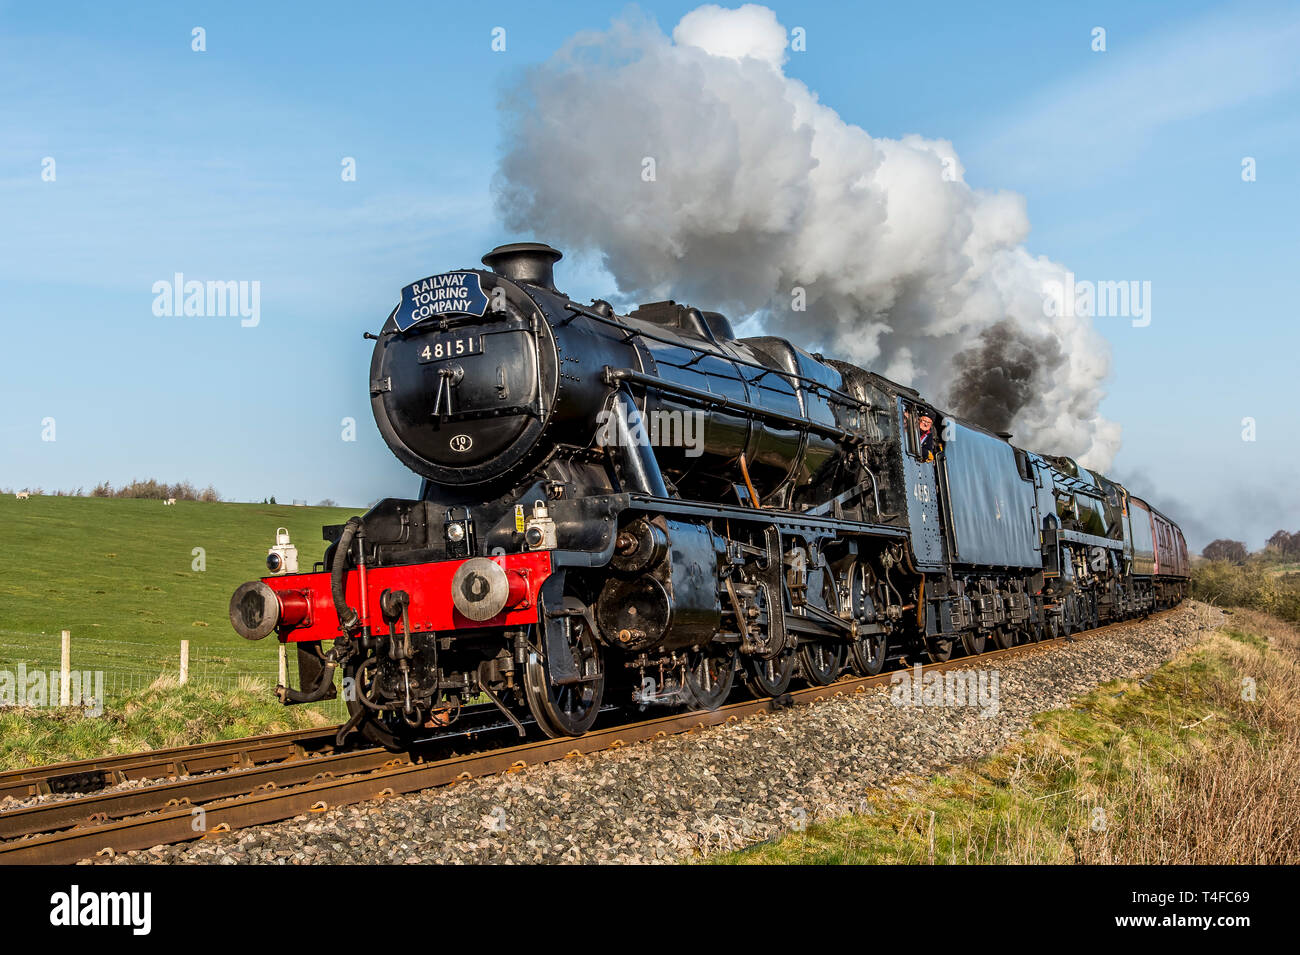 Double header steam train headed by a Black 5 48151 and the British India Line 35018 trailing after passing through Clapham in the Yorkshire Dales - Stock Image